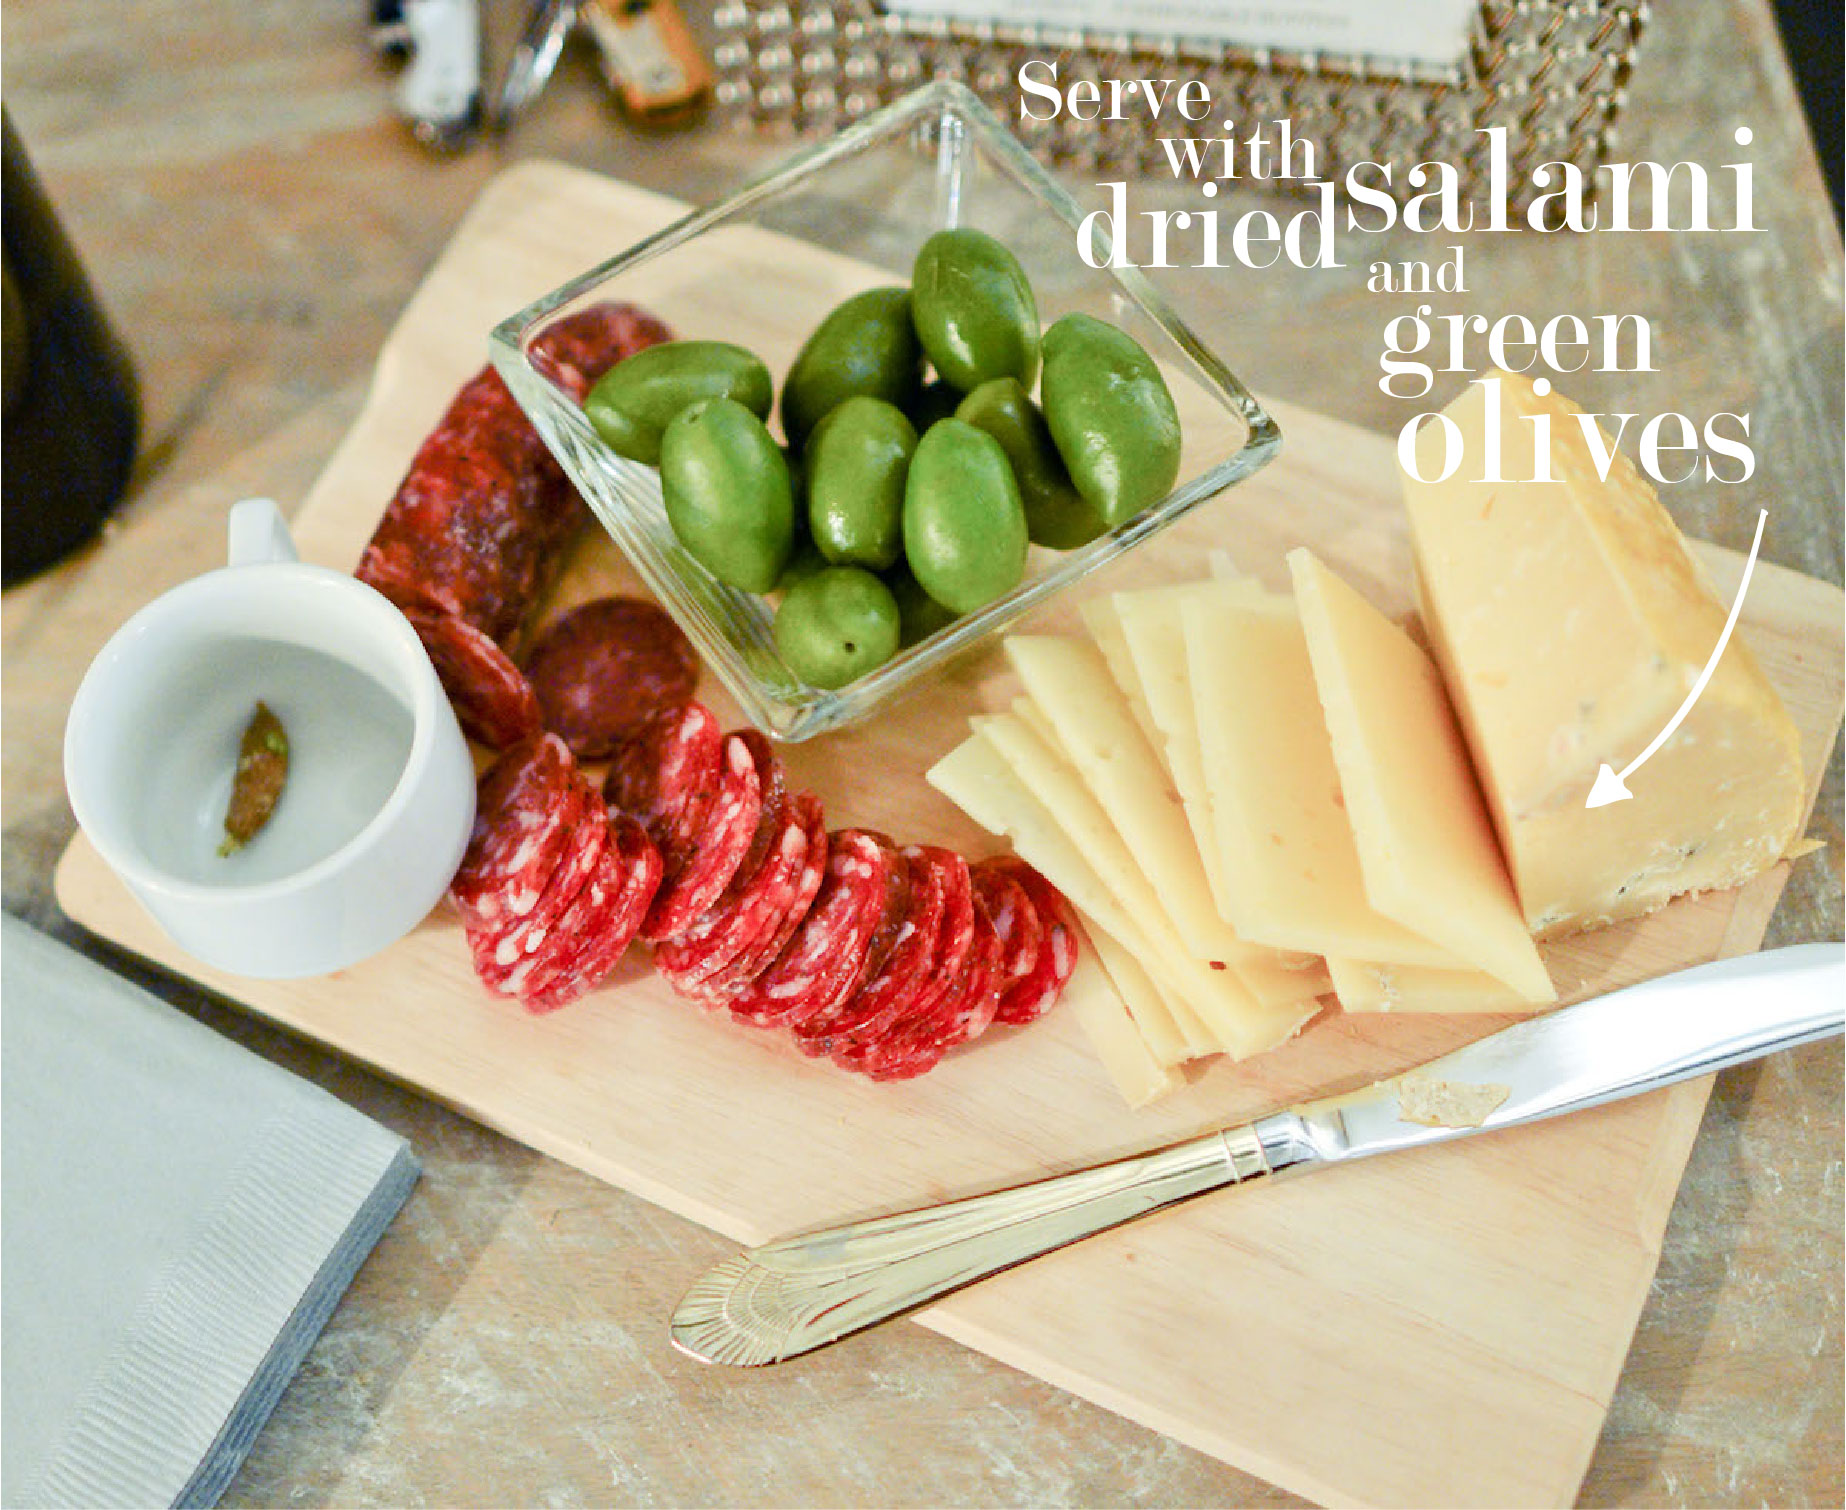 Cheese Plate with Dried Salami and Olives // FashionableHostess.com & Create the Perfect Cheese Platter - Fashionable Hostess